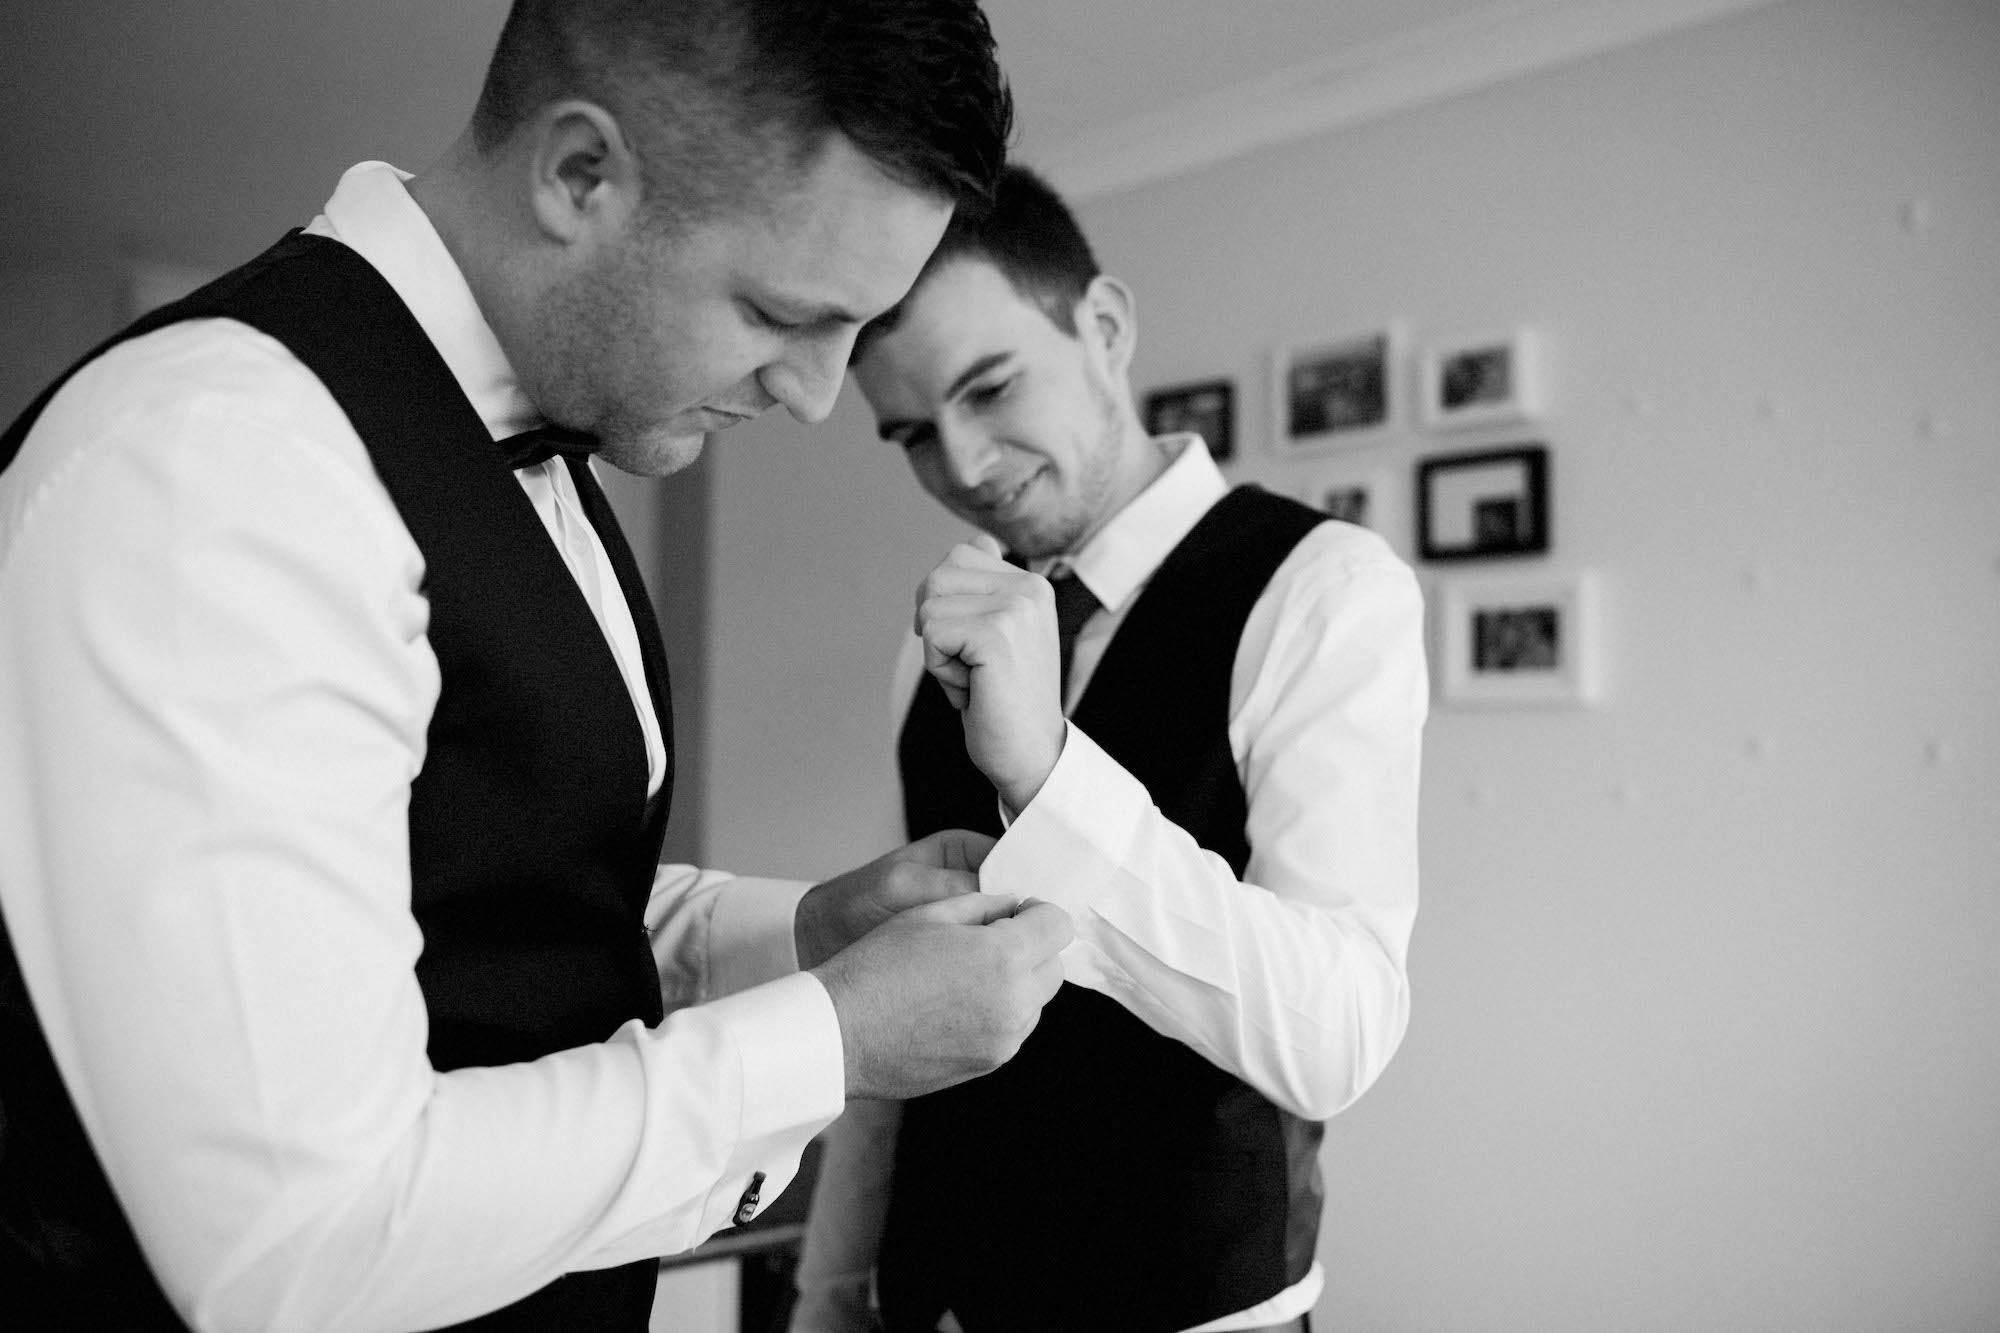 Groomsmen helping the groom put his cufflinks on before his Perth wedding.